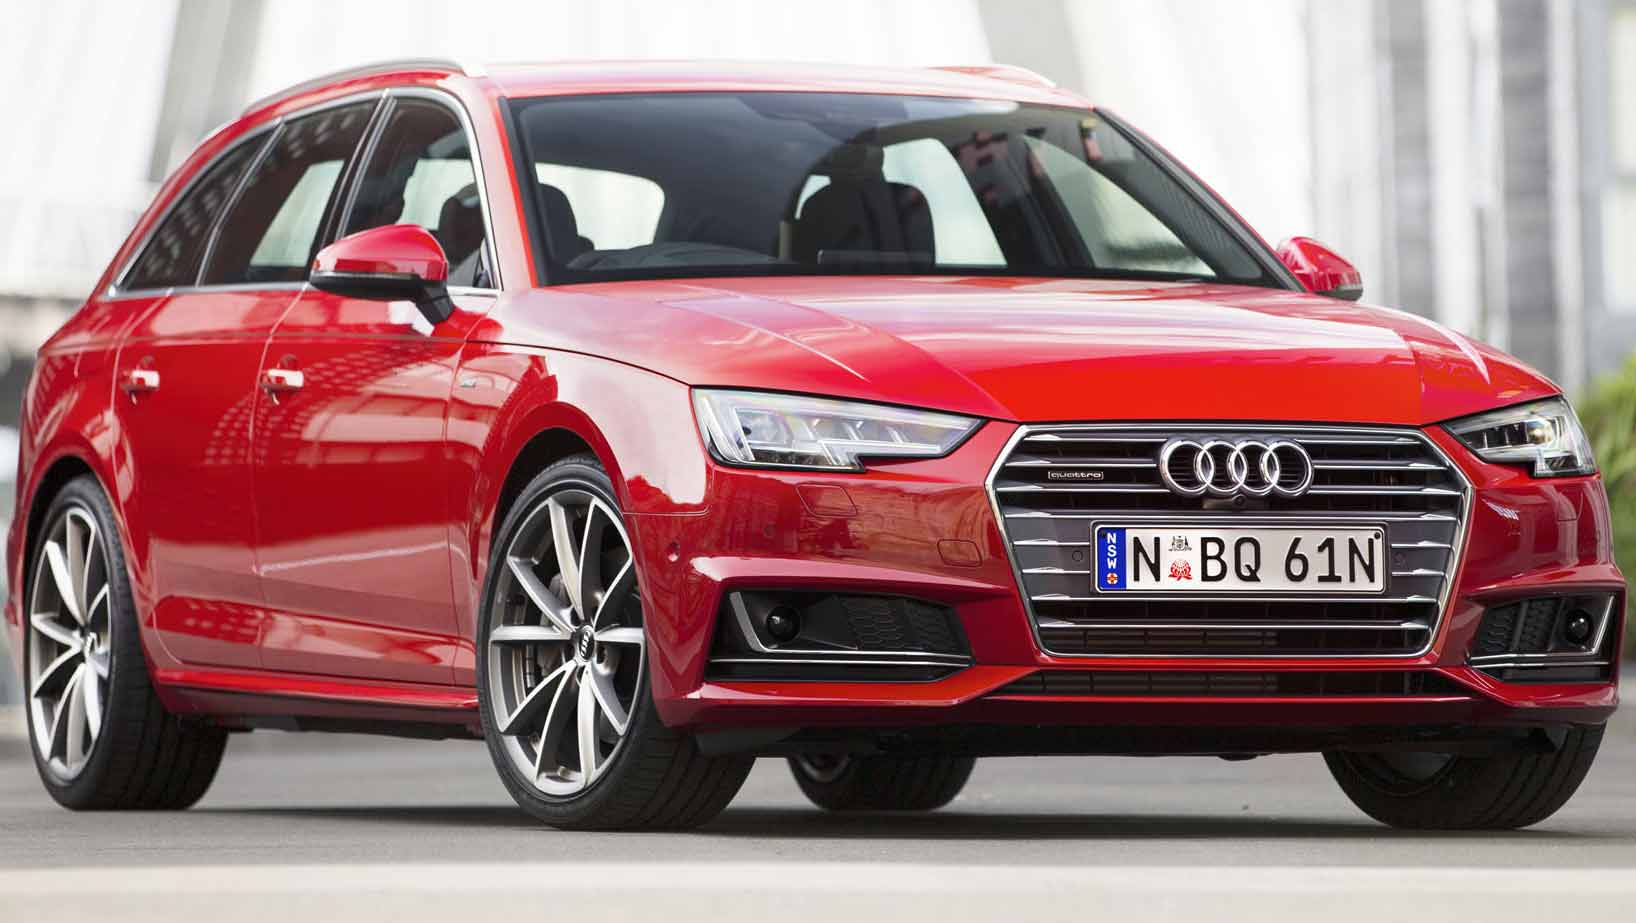 2016 audi a4 avant review carsguide. Black Bedroom Furniture Sets. Home Design Ideas